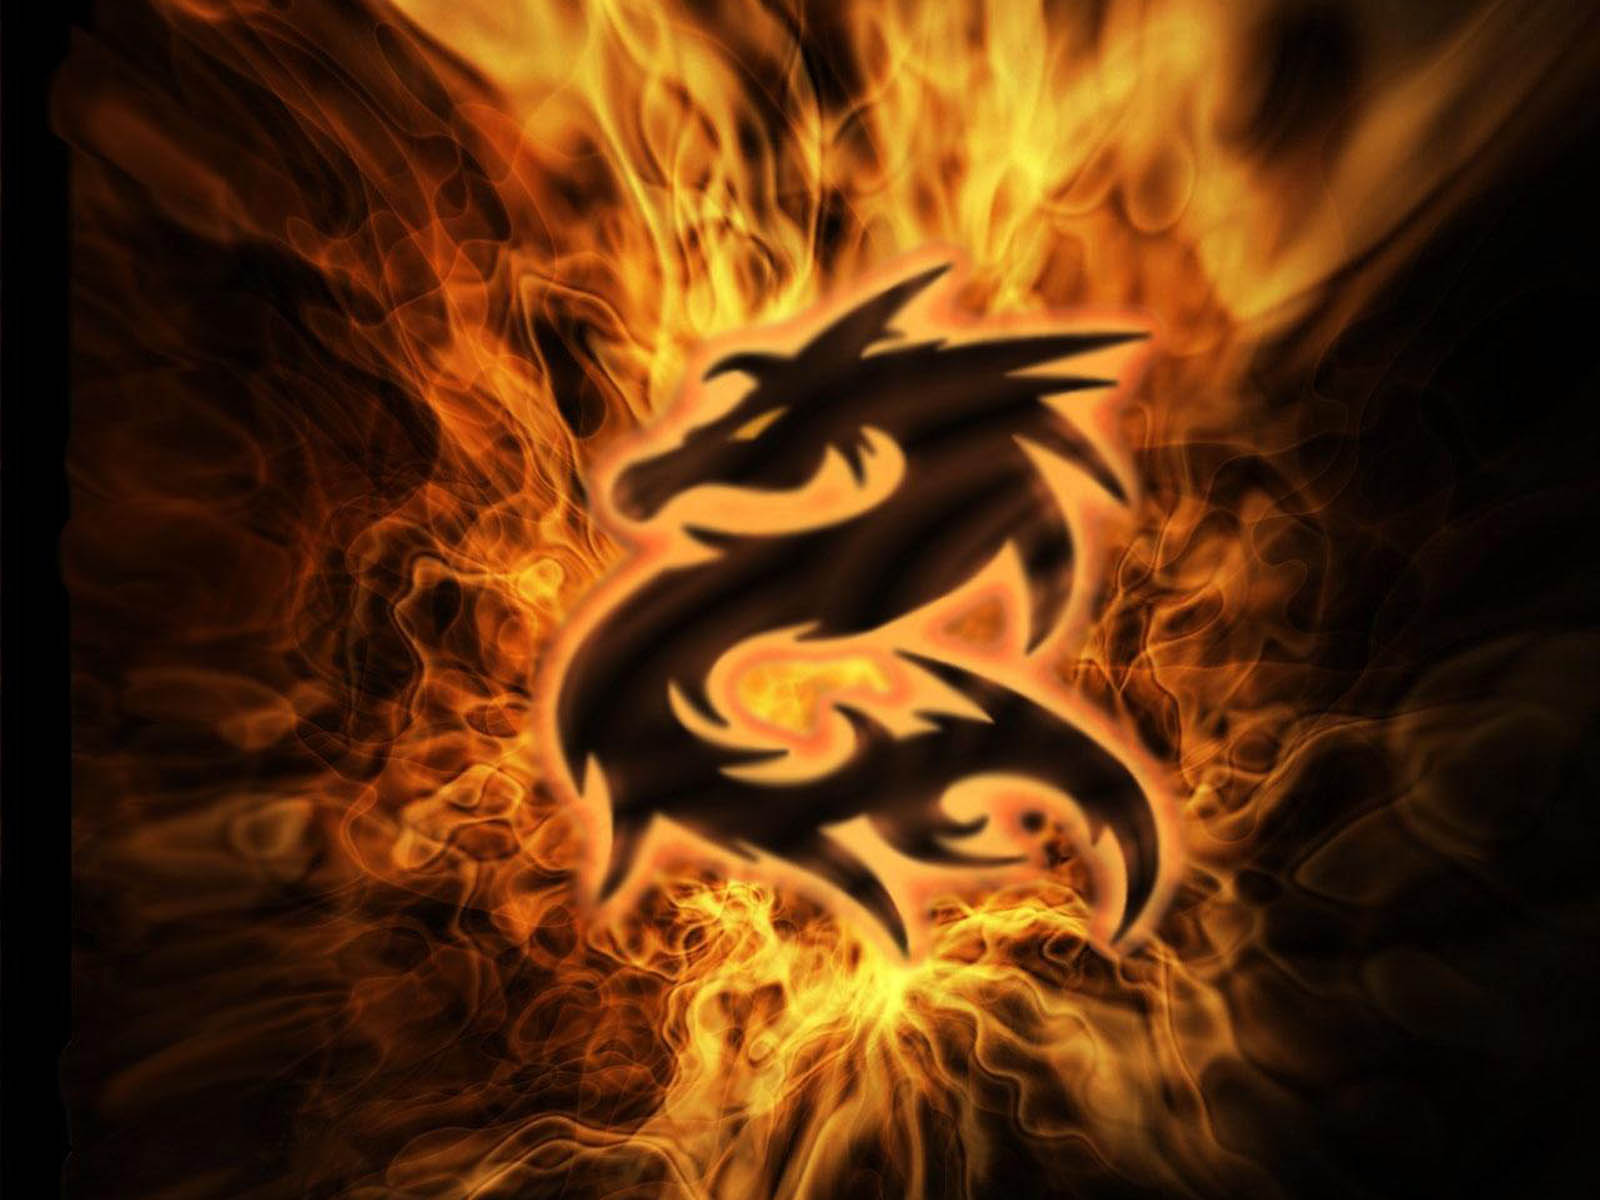 wallpapers Dragon Wallpapers 1600x1200